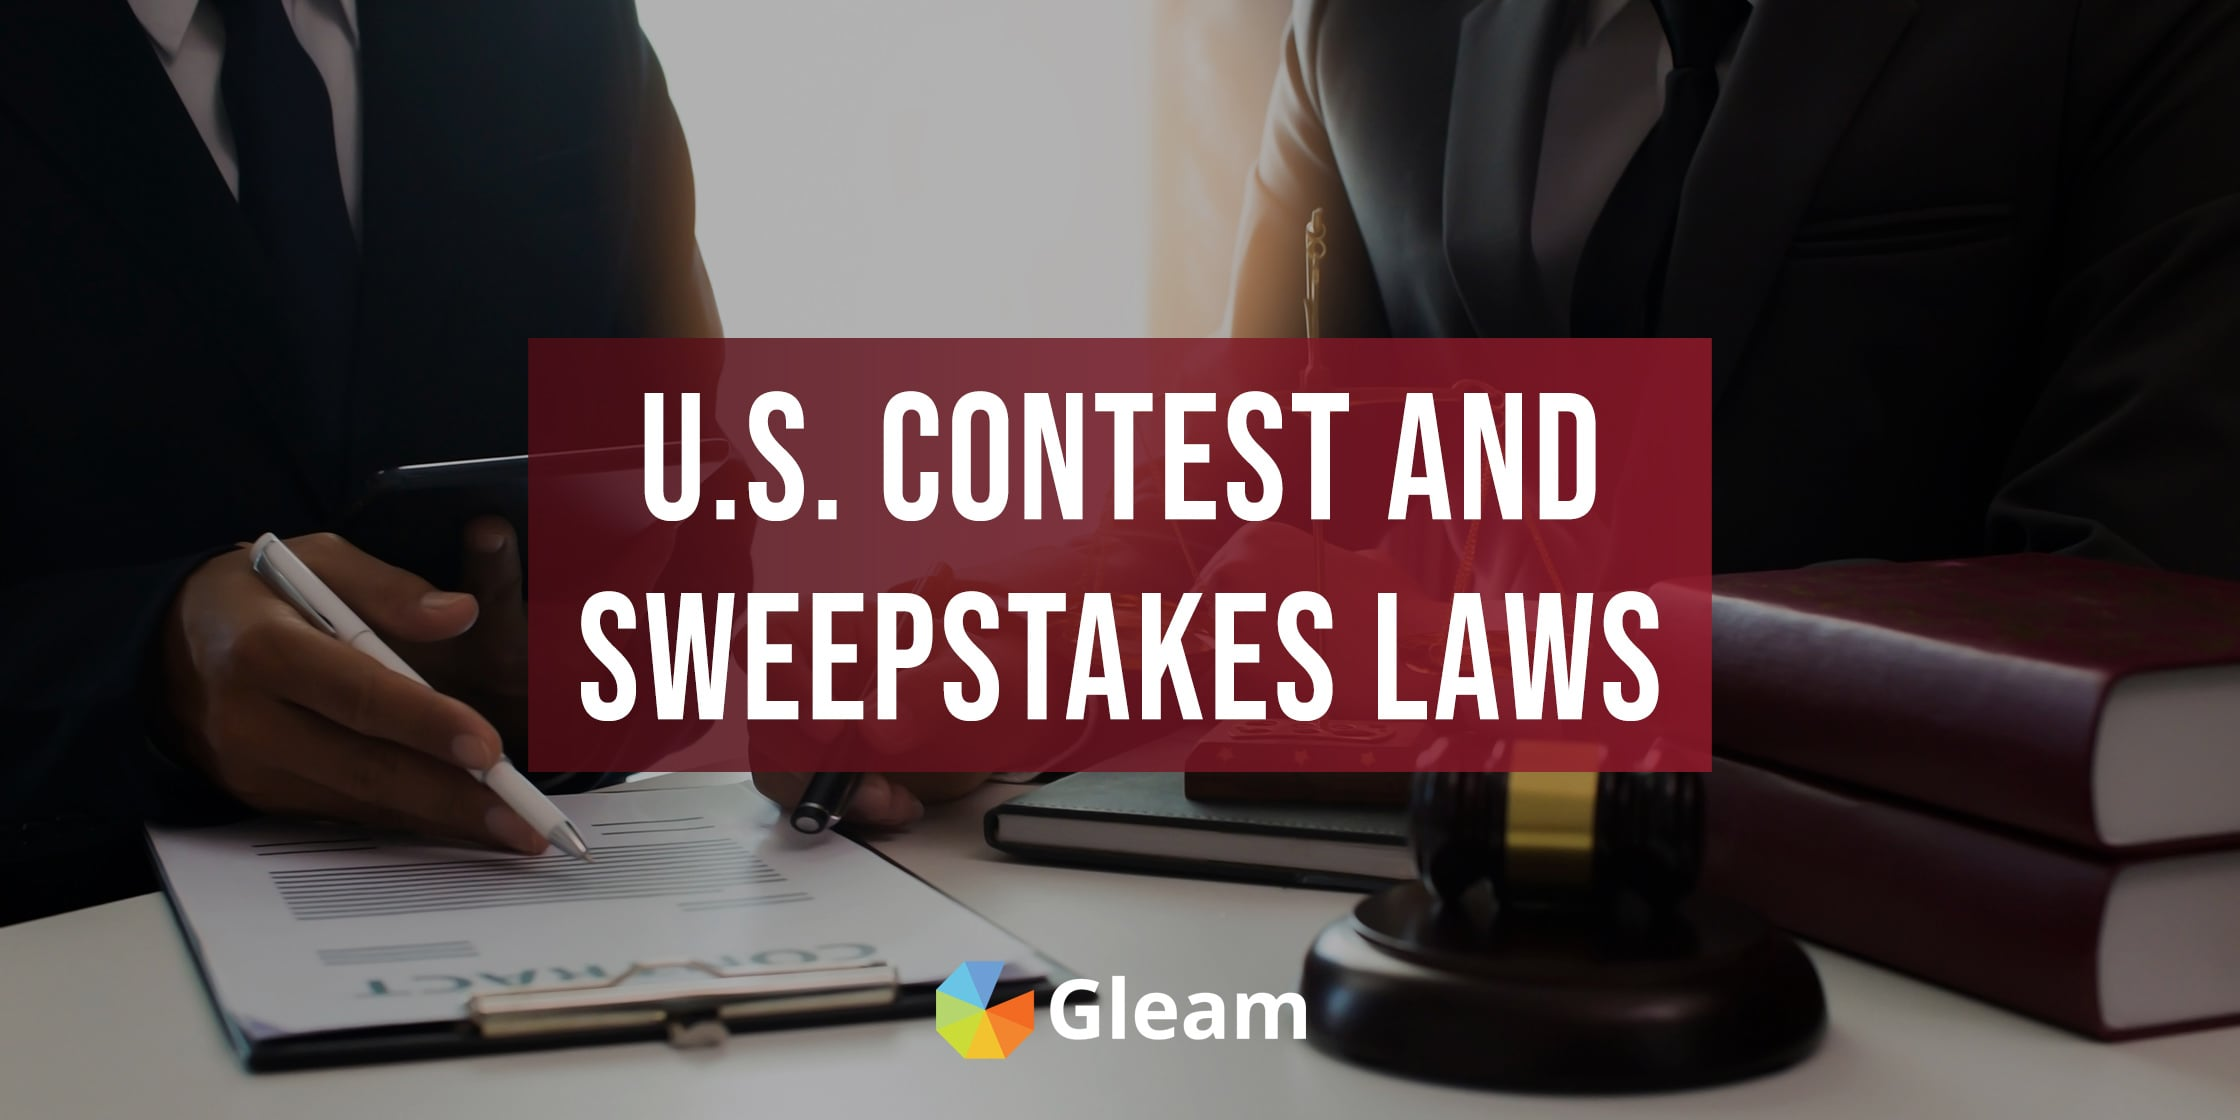 How to Run Legal Giveaways, Contests & Sweepstakes